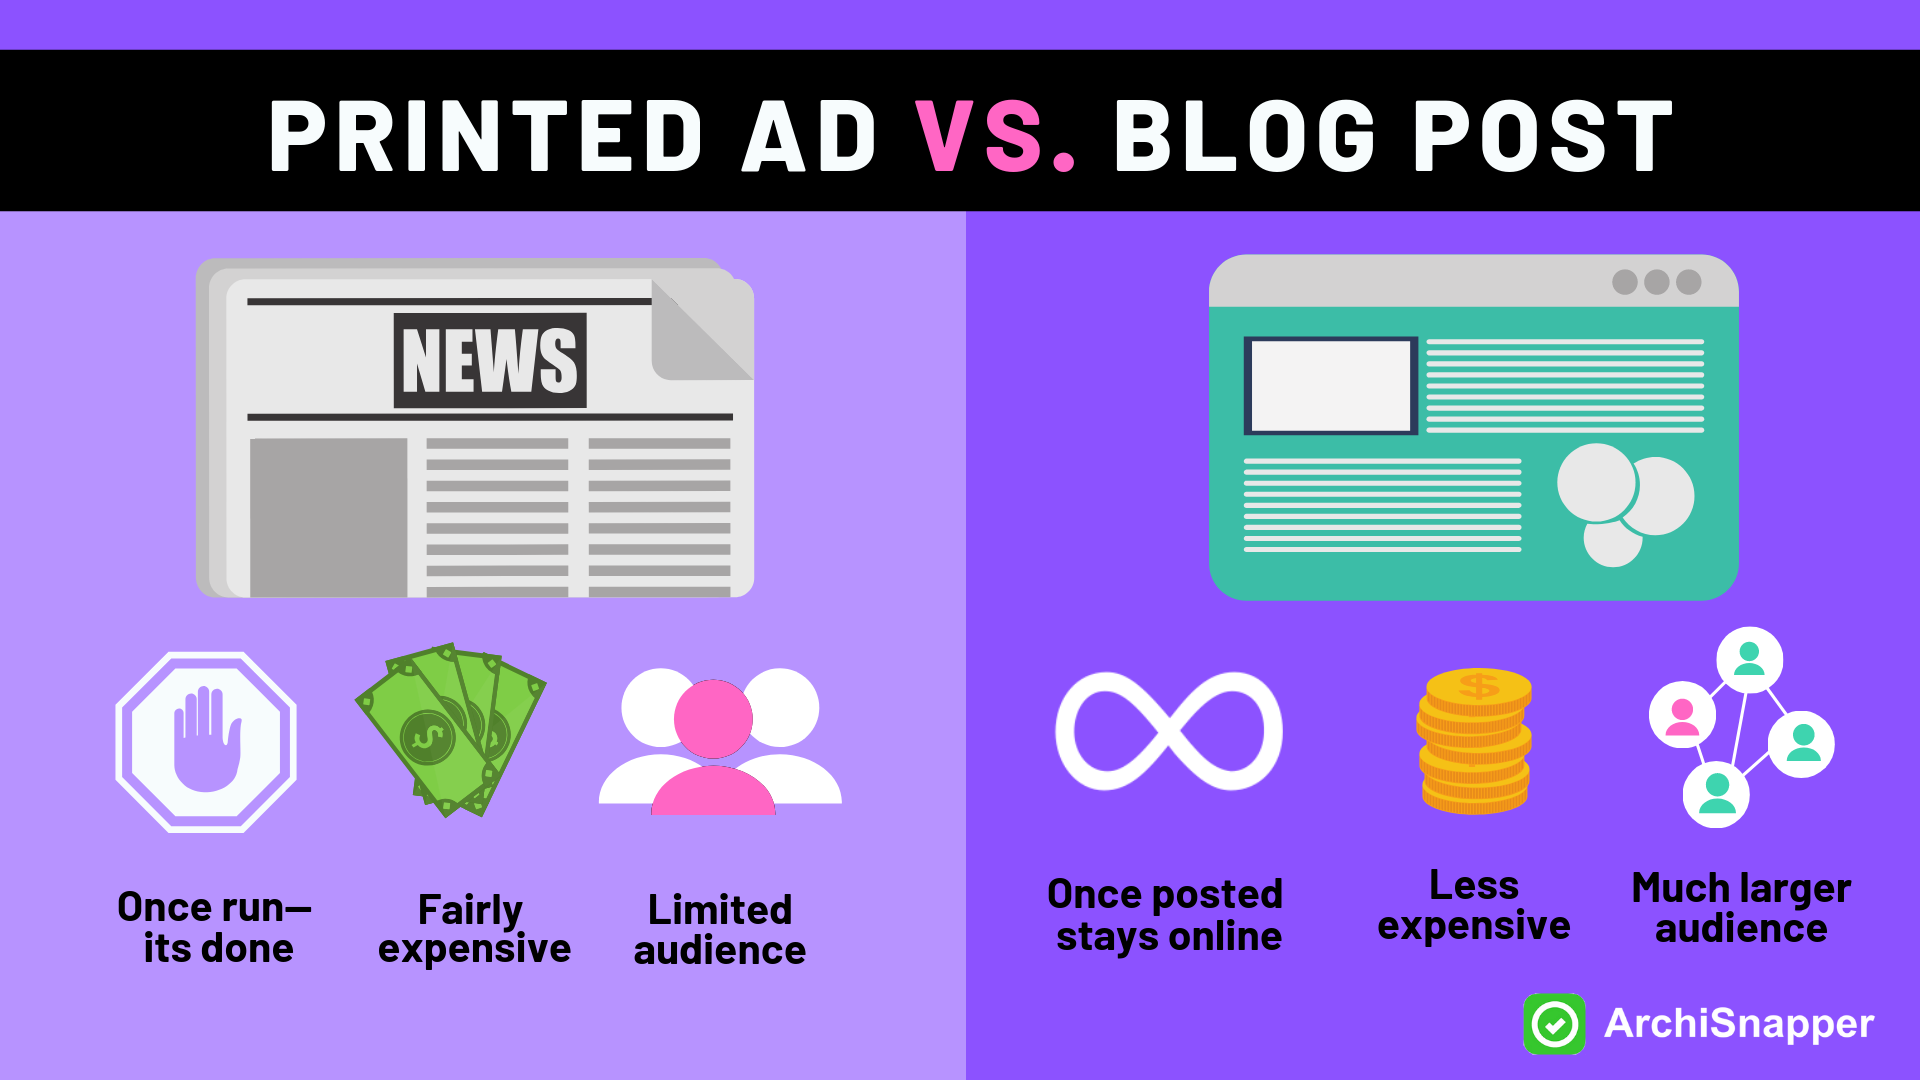 Blog posts vs paid advertisement | Archisnapper